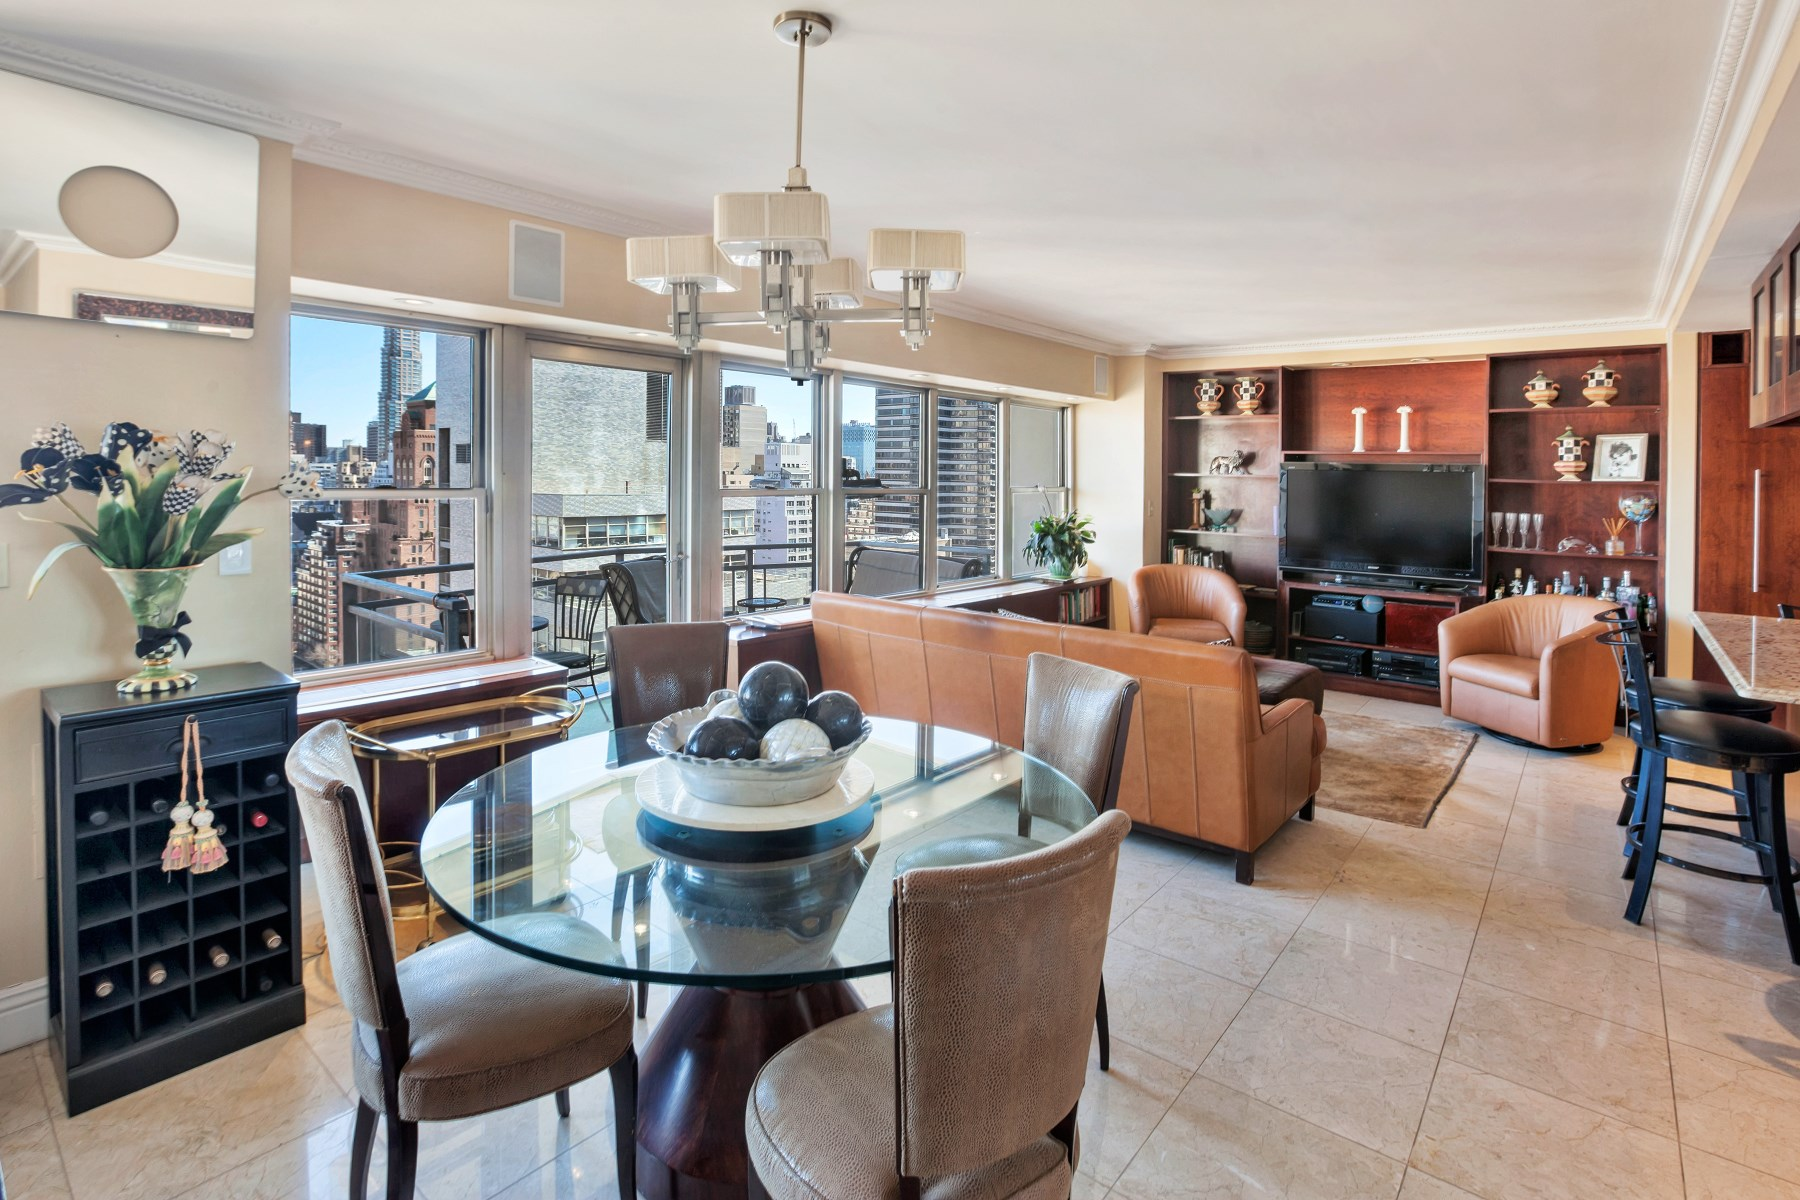 Co-op for Sale at 118 East 60th Street, Apt 24BC 118 East 60th Street Apt 24BC New York, New York 10022 United States